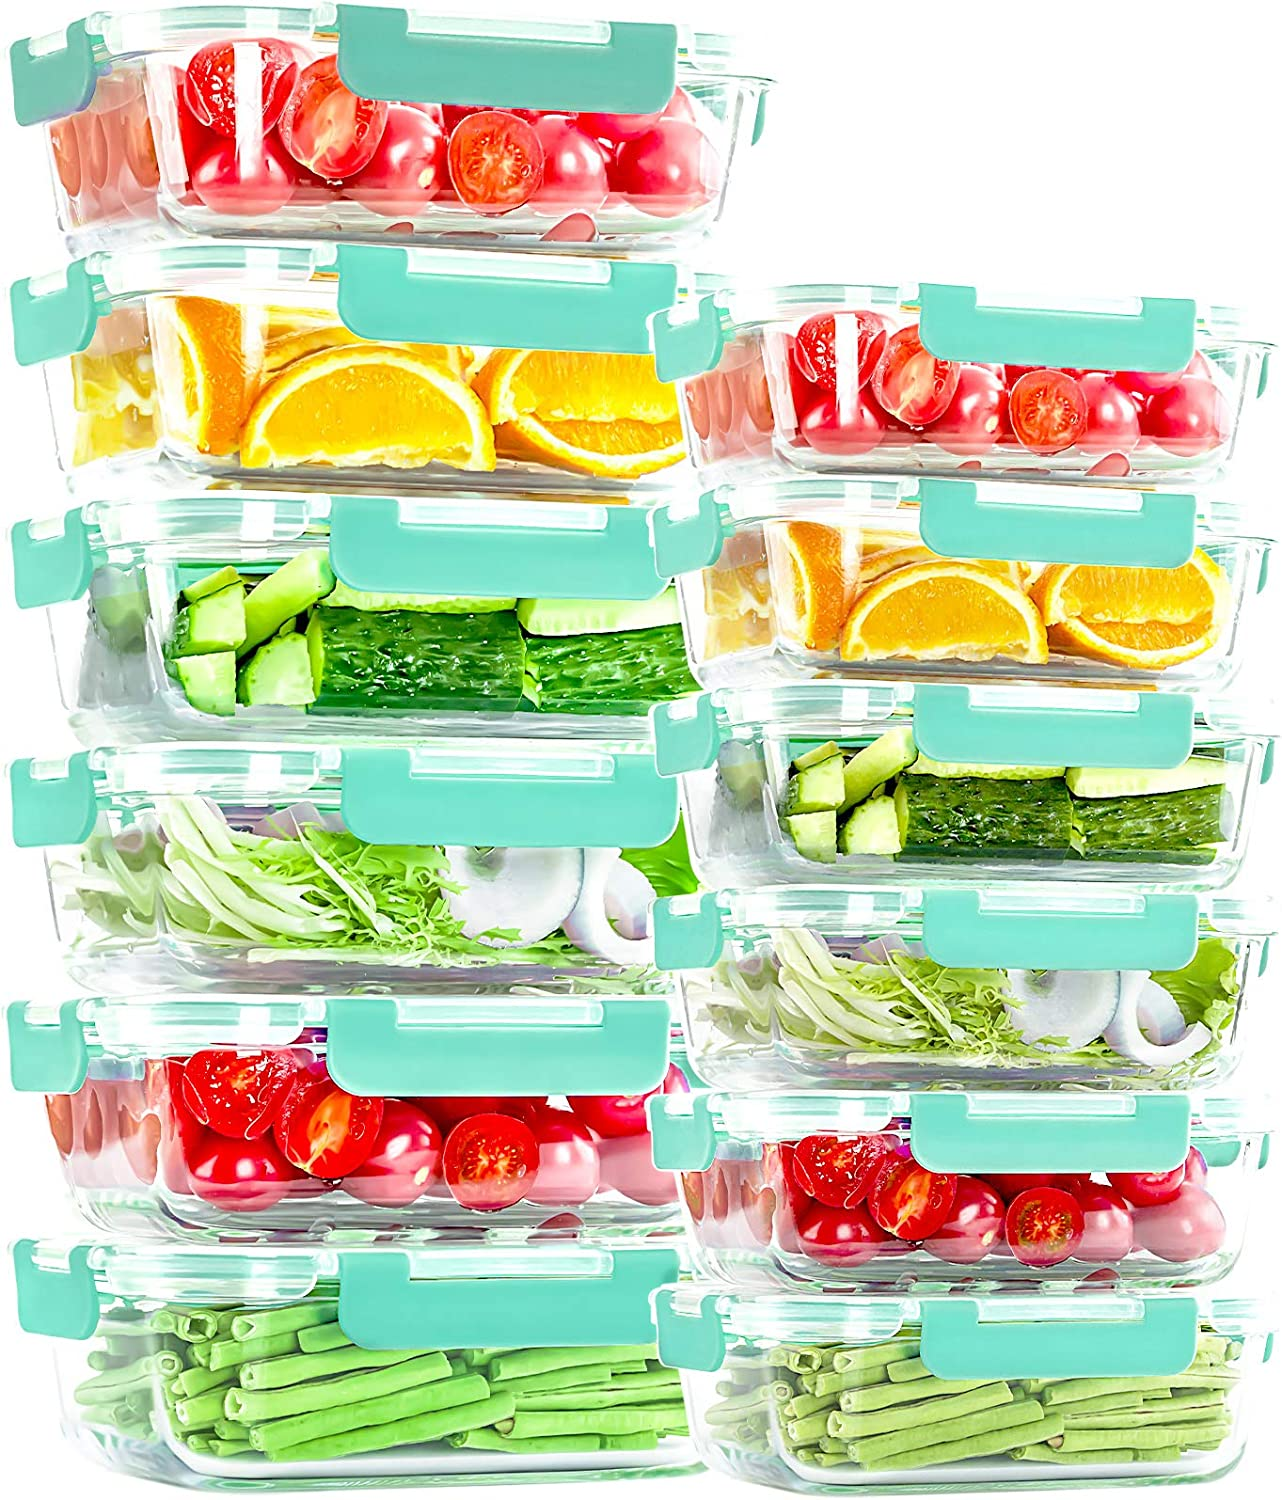 Glass Food Storage Containers [24 Piece], Airtight Glass lunch Bento Box Containers with Lids, Great on-the-go, Glass Meal Prep Containers, Microwave, Oven, Freezer, Dishwasher Safe